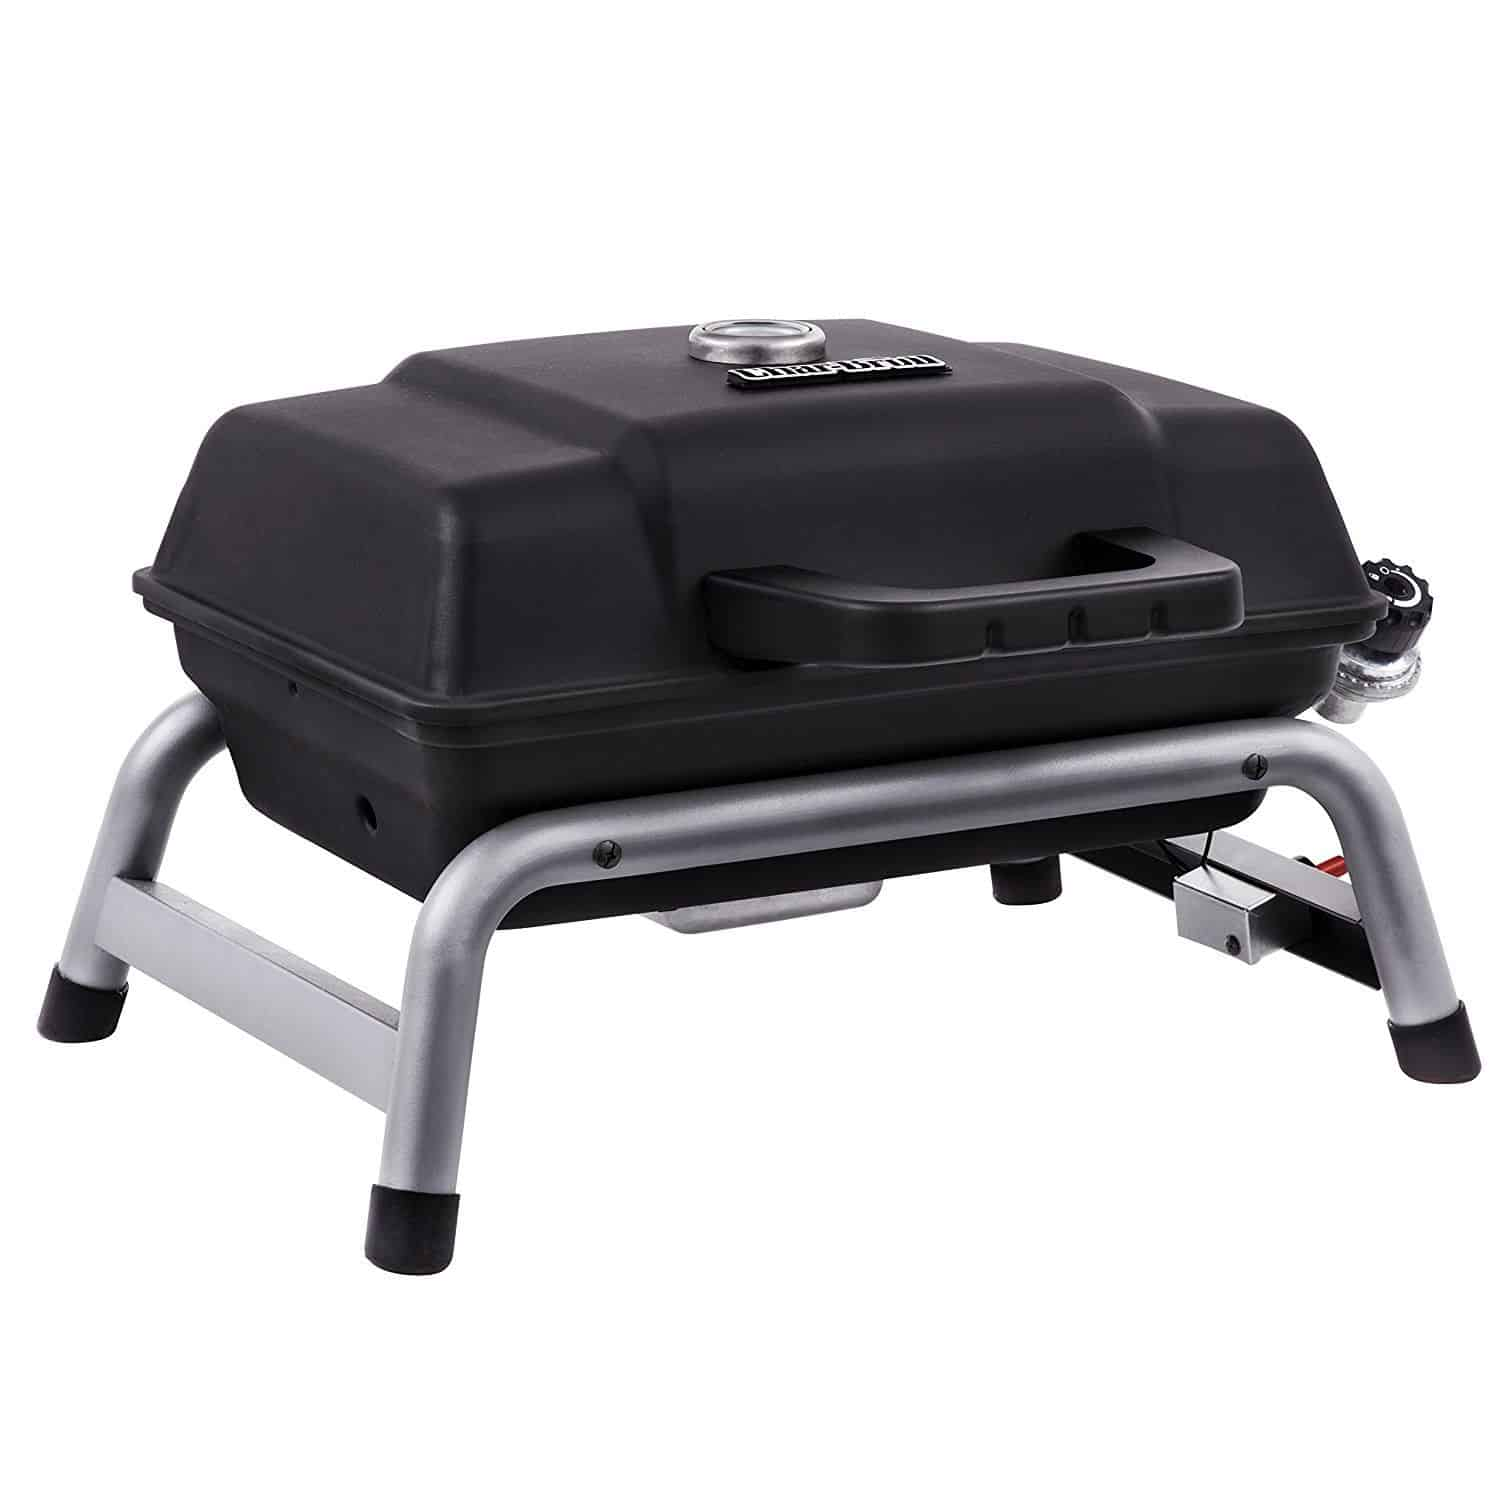 Portable Gas Grill With Enclosure Painted And Supported By A Four Legged  Rubber Footings